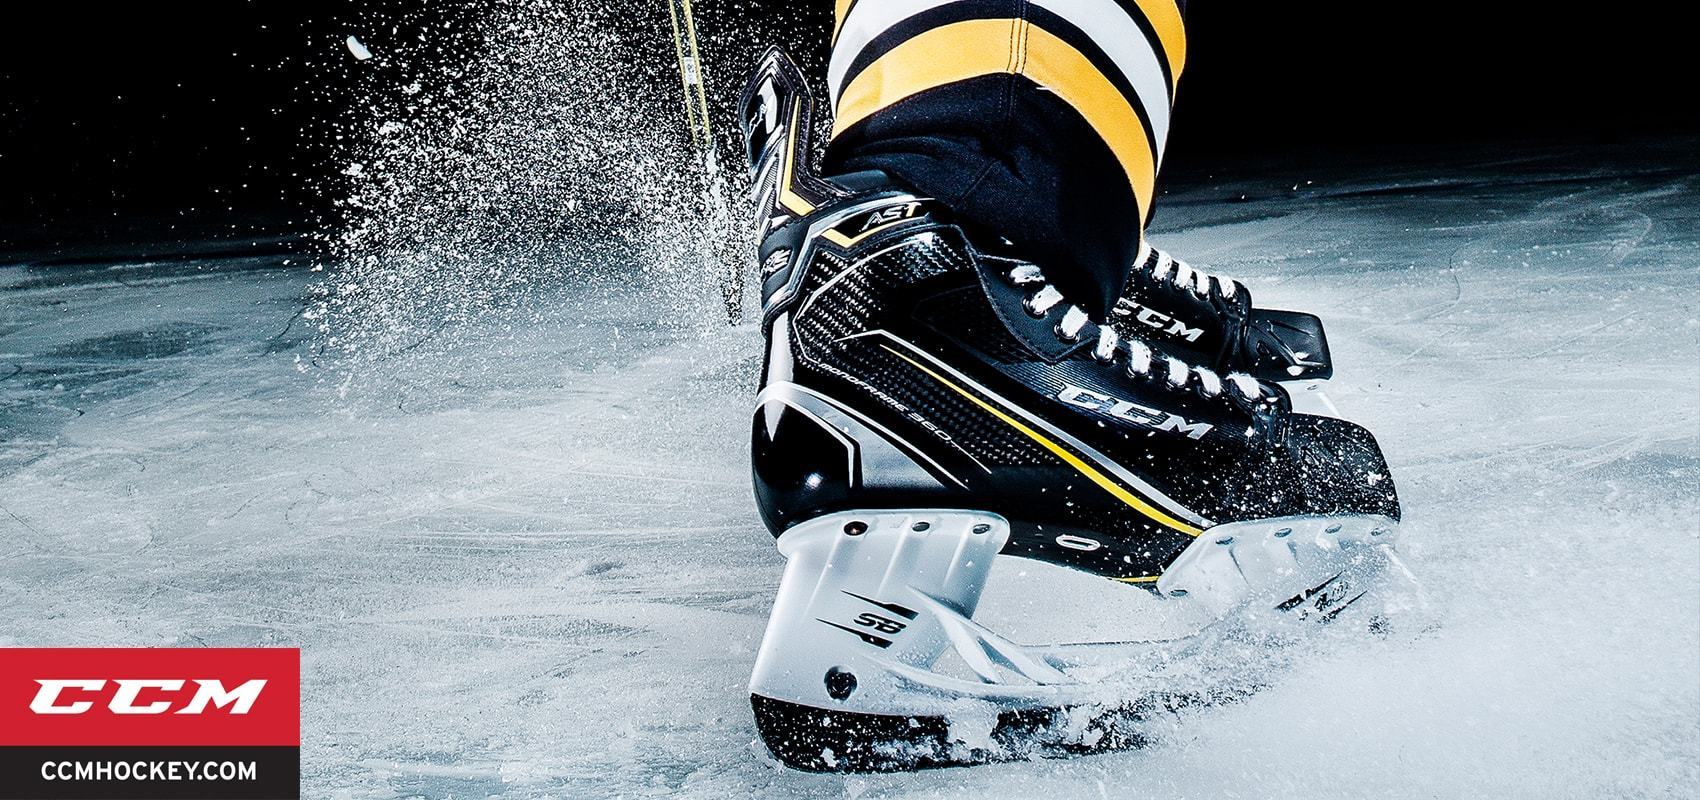 c47800acb1a CCM Super Tacks AS1 Ice Hockey Skate - Our Review - BSR